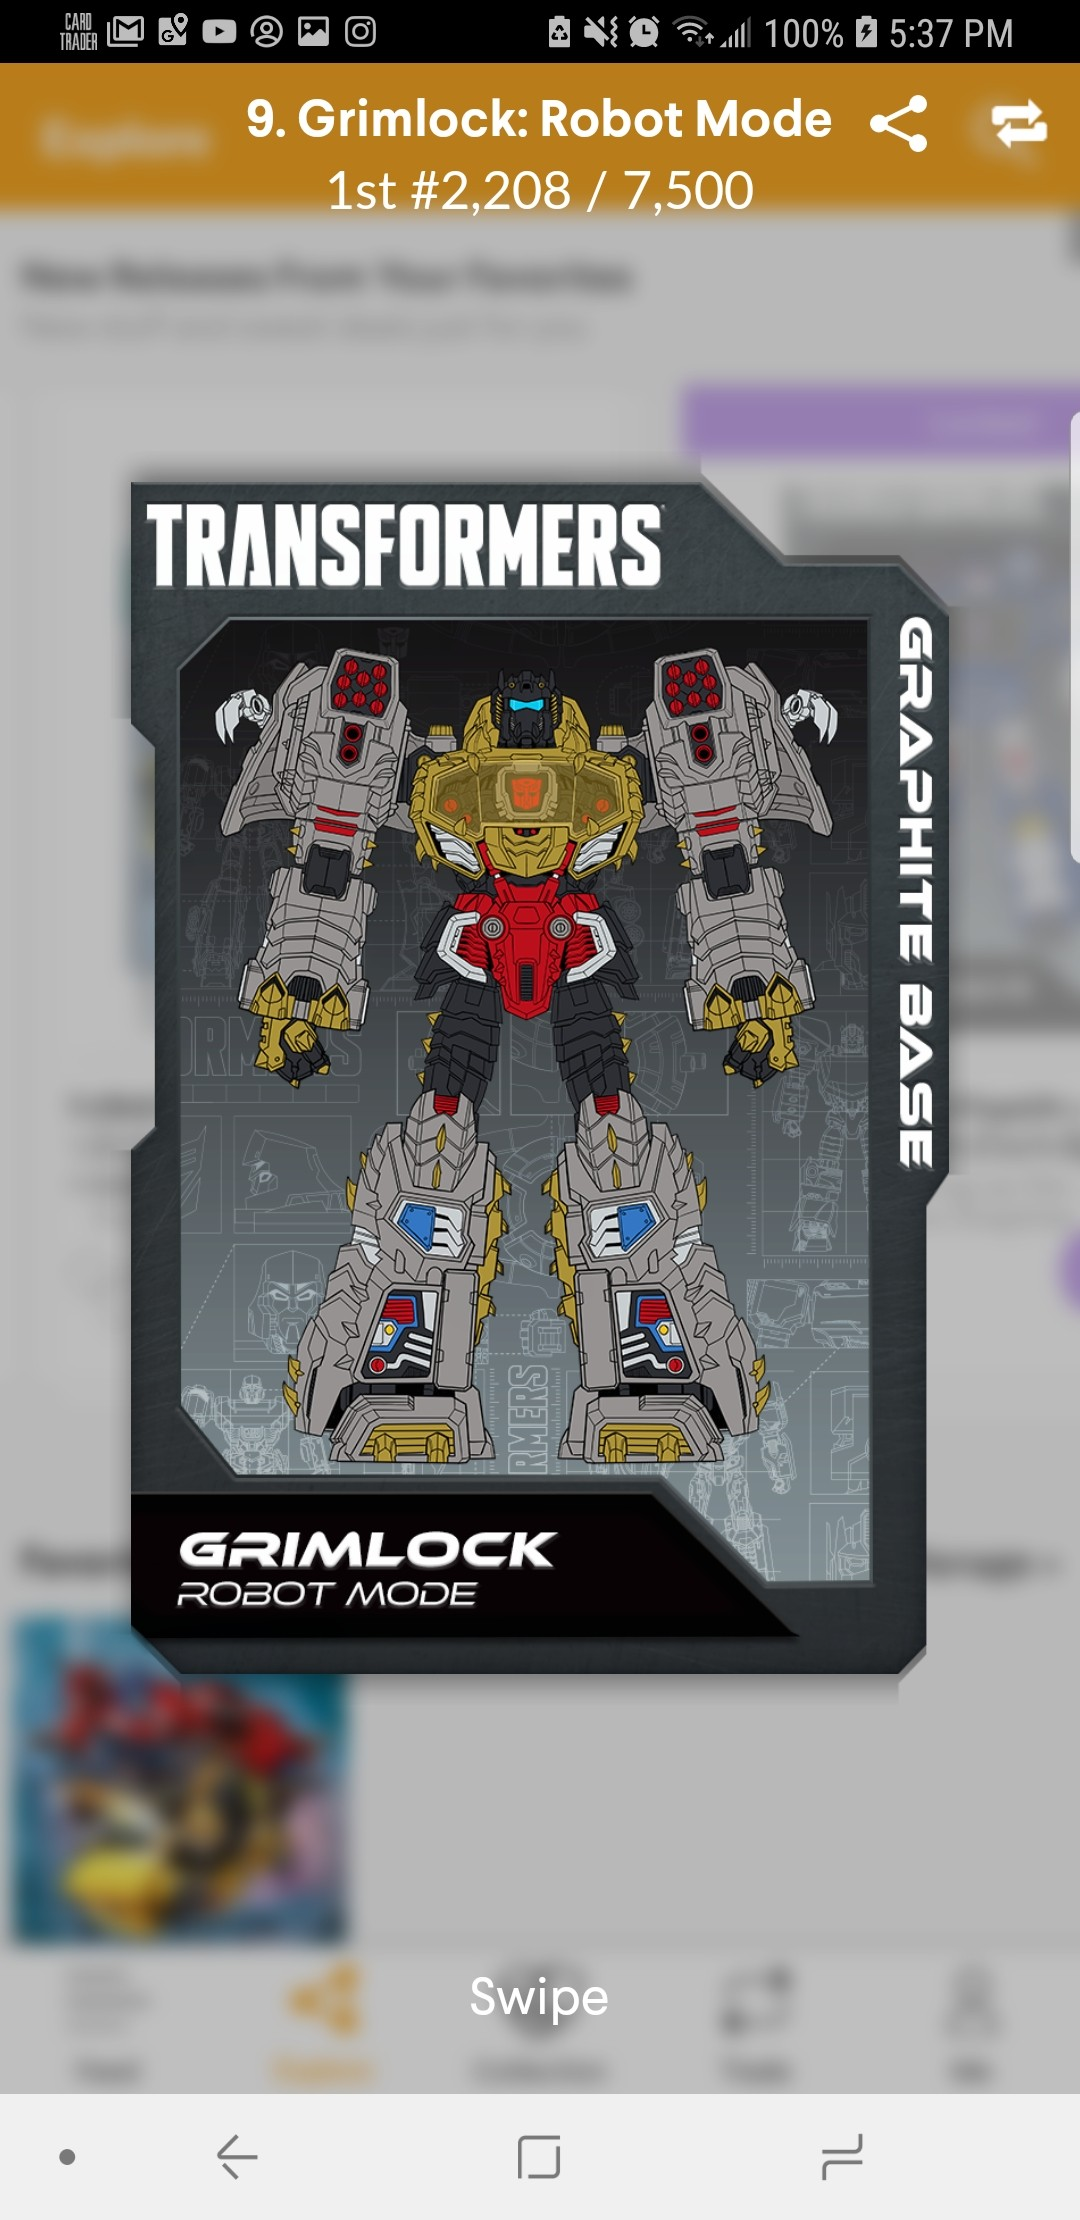 Transformers News: New Officially Licensed Transformers Digital Stickers on Quidd